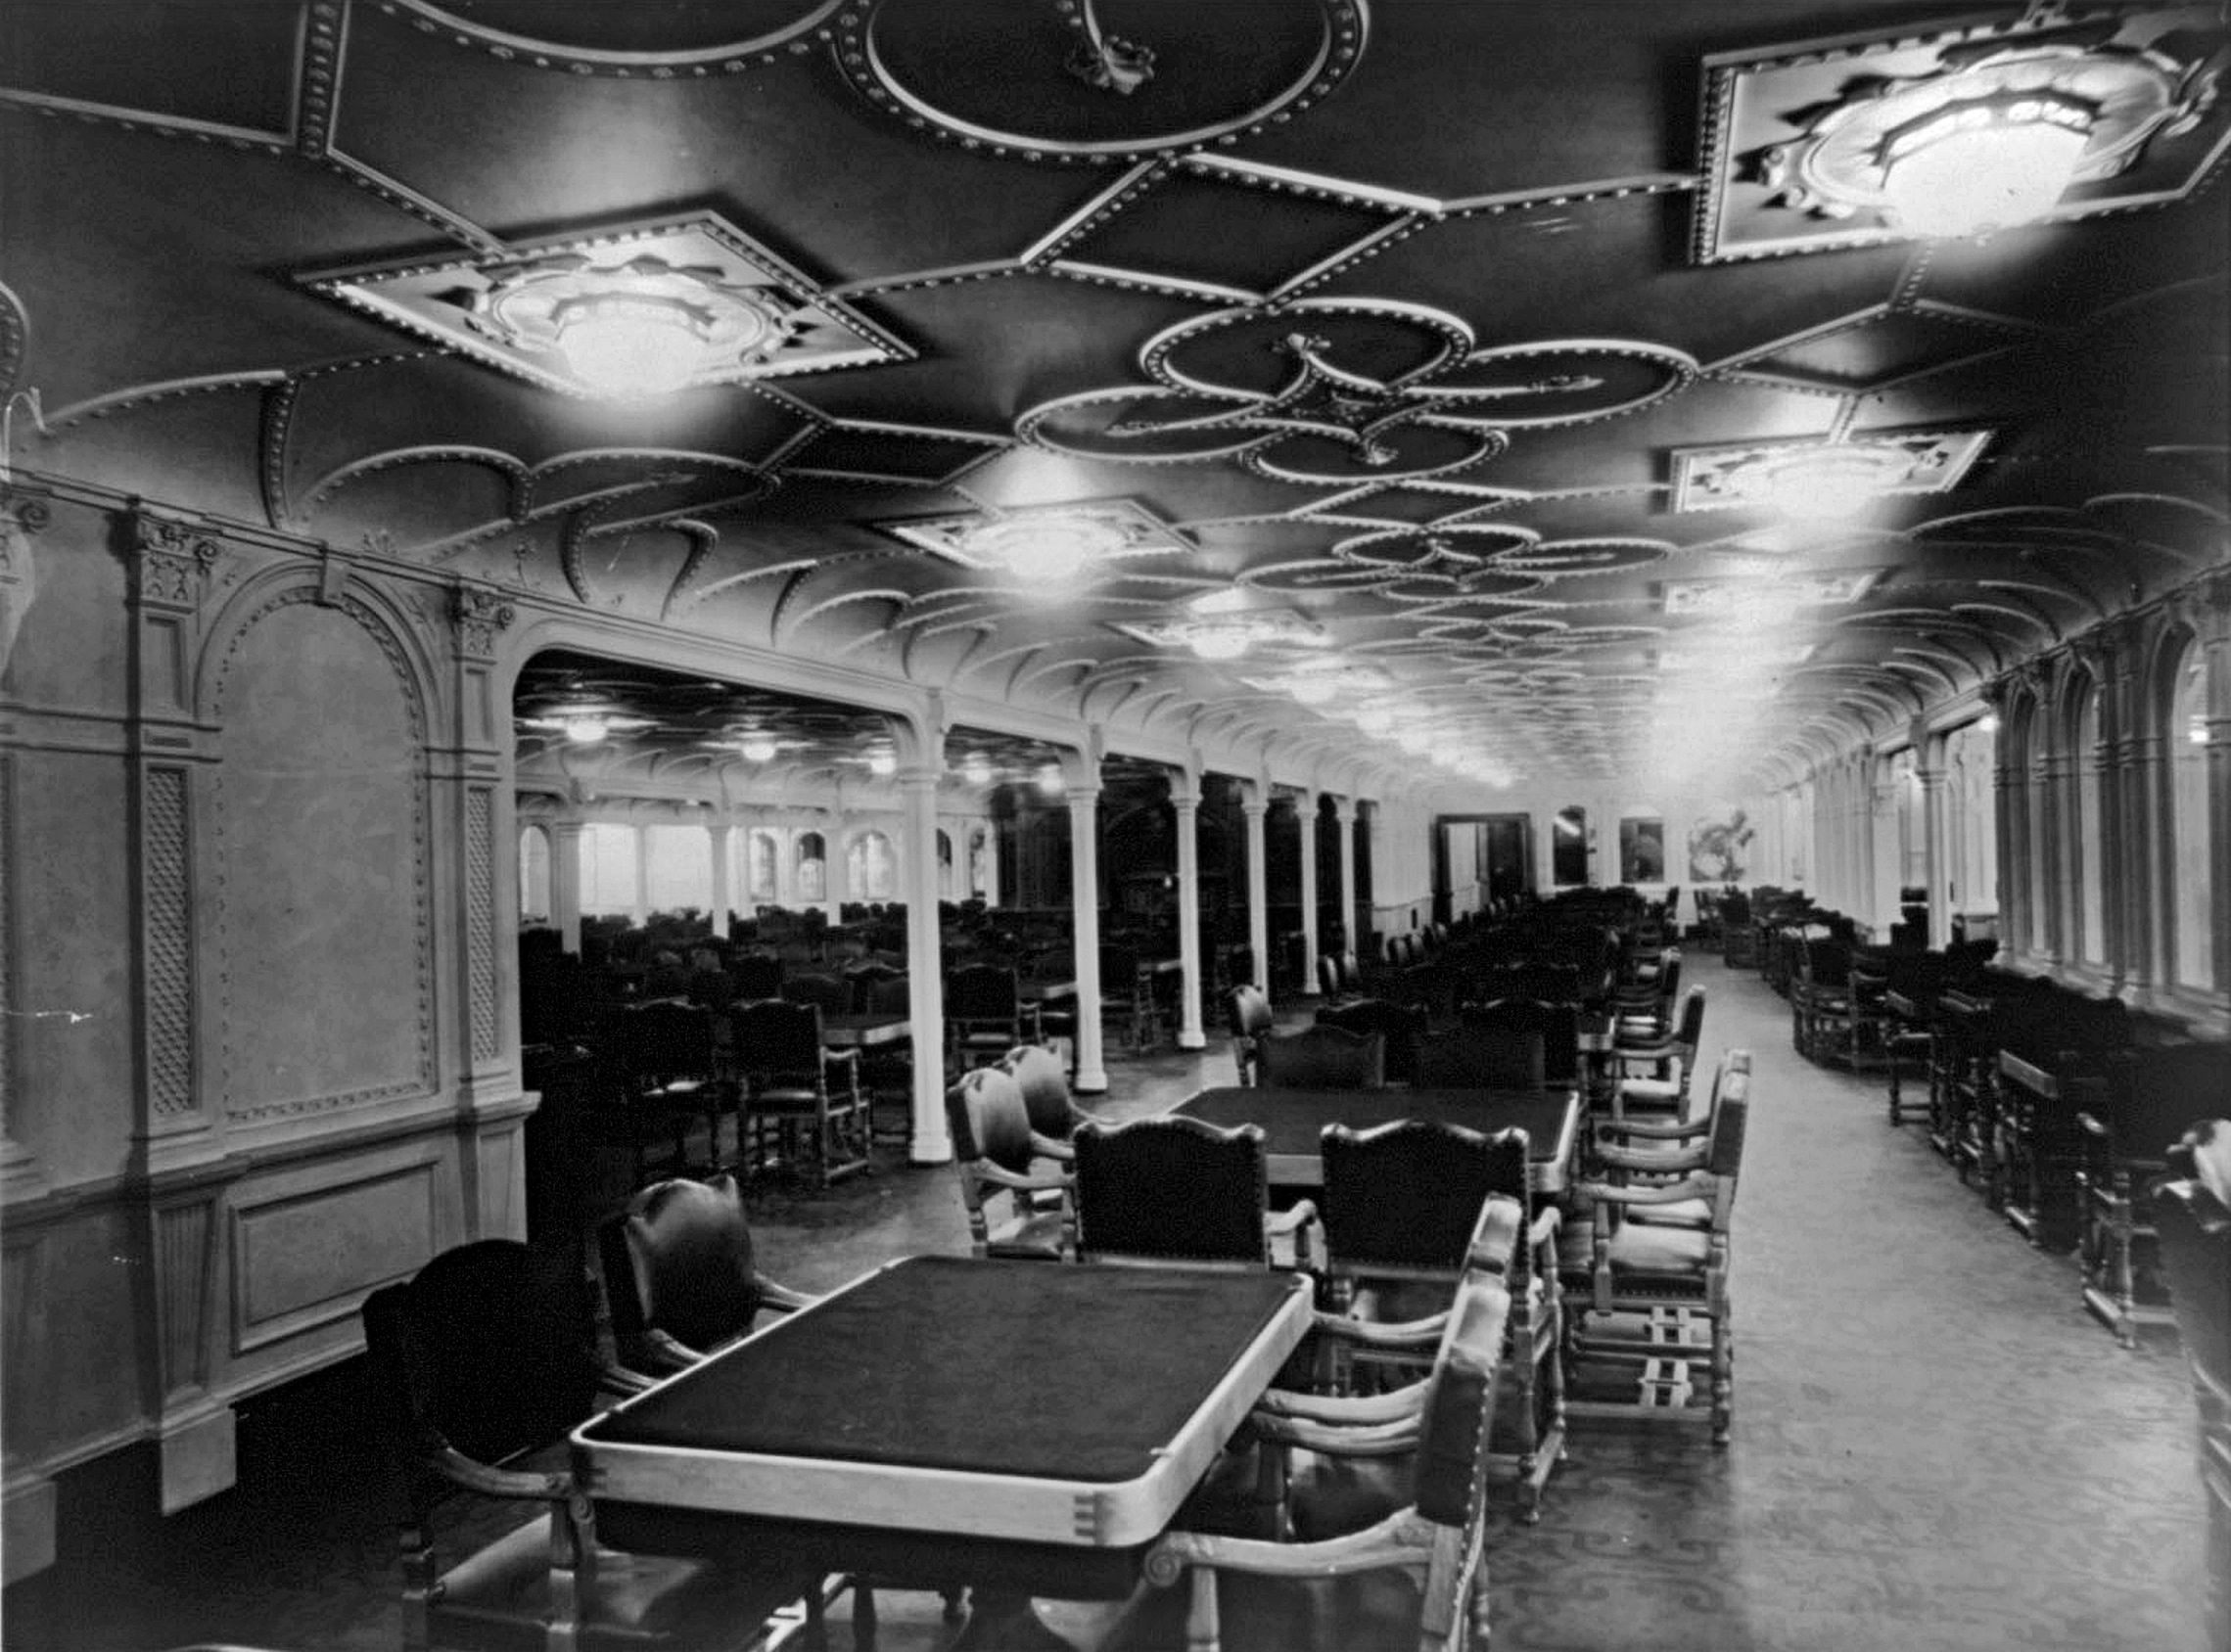 rms olympic first class dining room | britanic-olympic-titanic